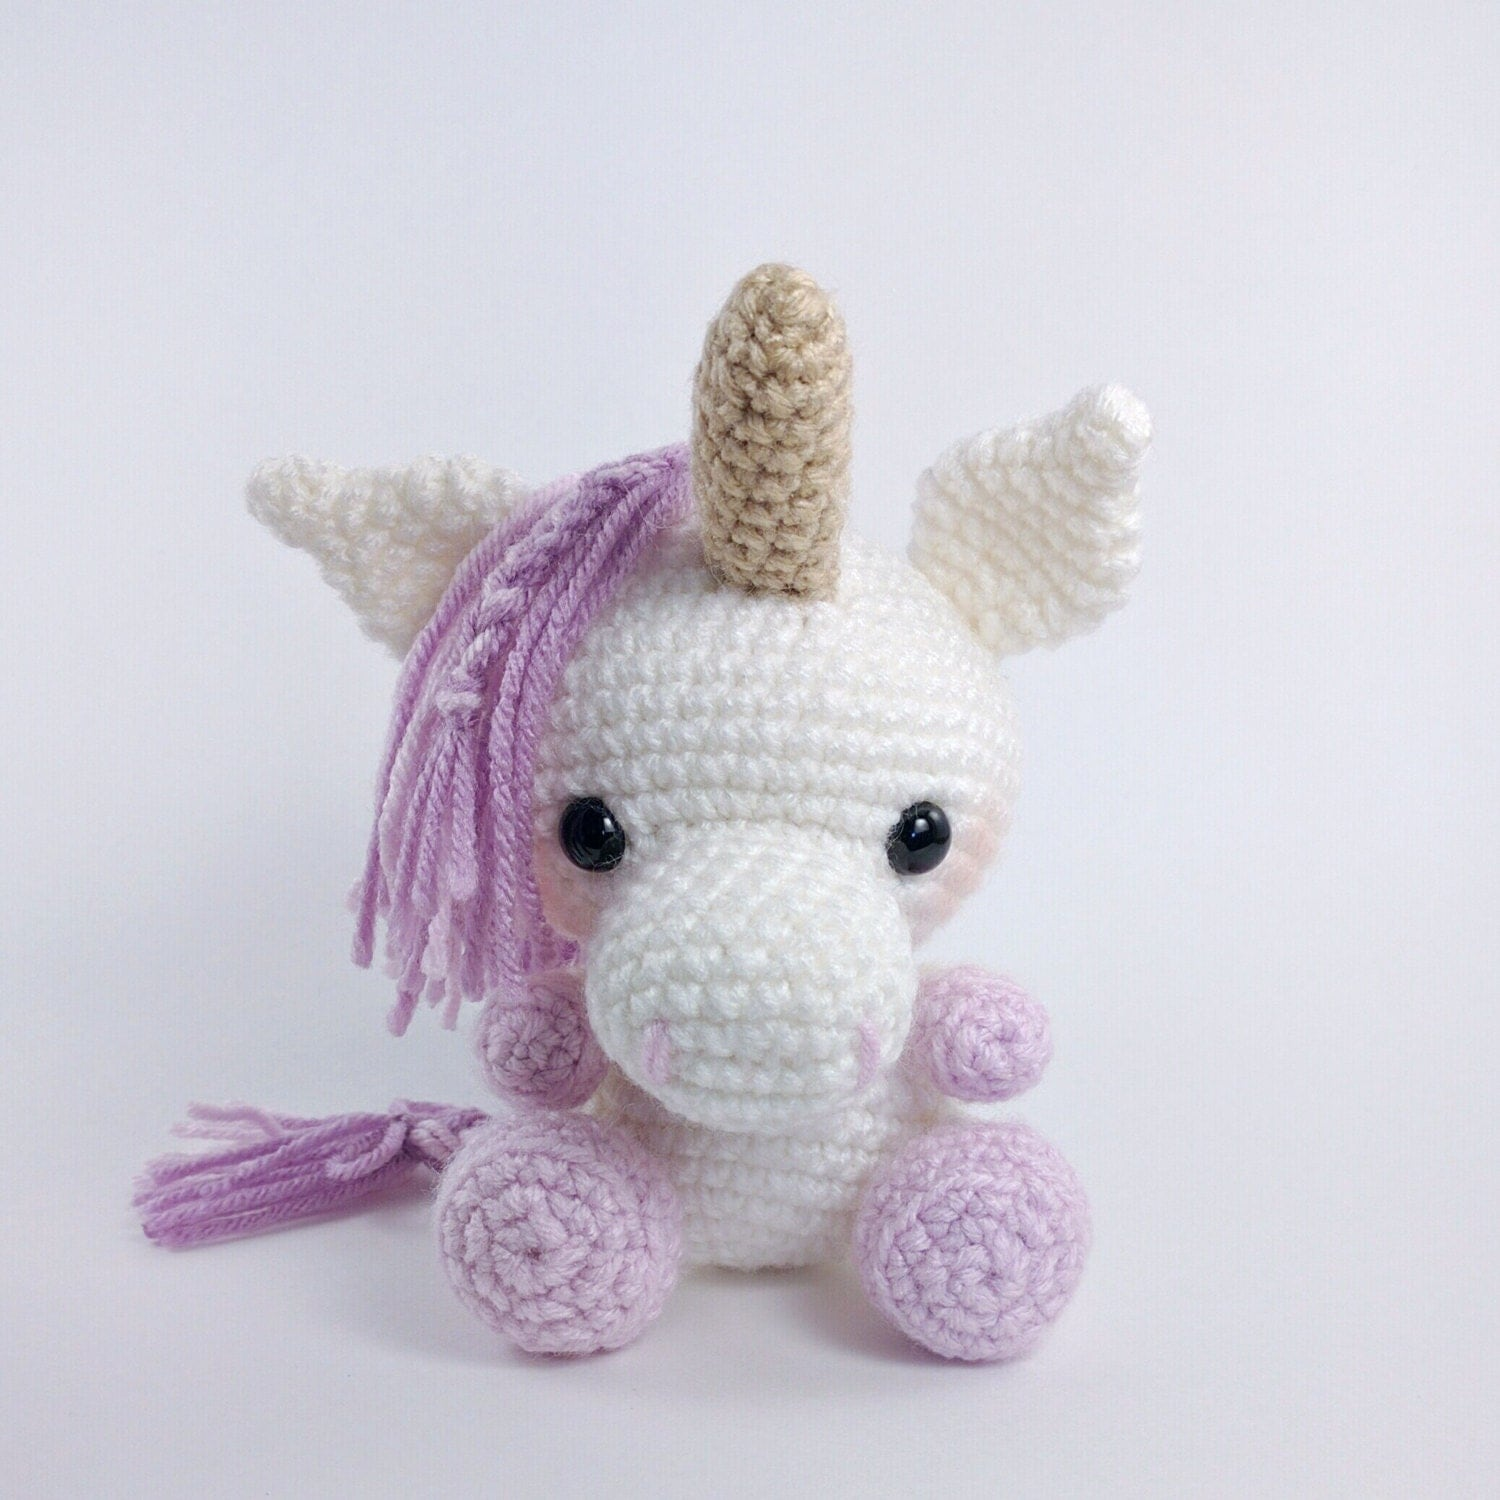 Tutorial Amigurumi Unicorno : PATTERN: Crochet unicorn pattern amigurumi unicorn pattern